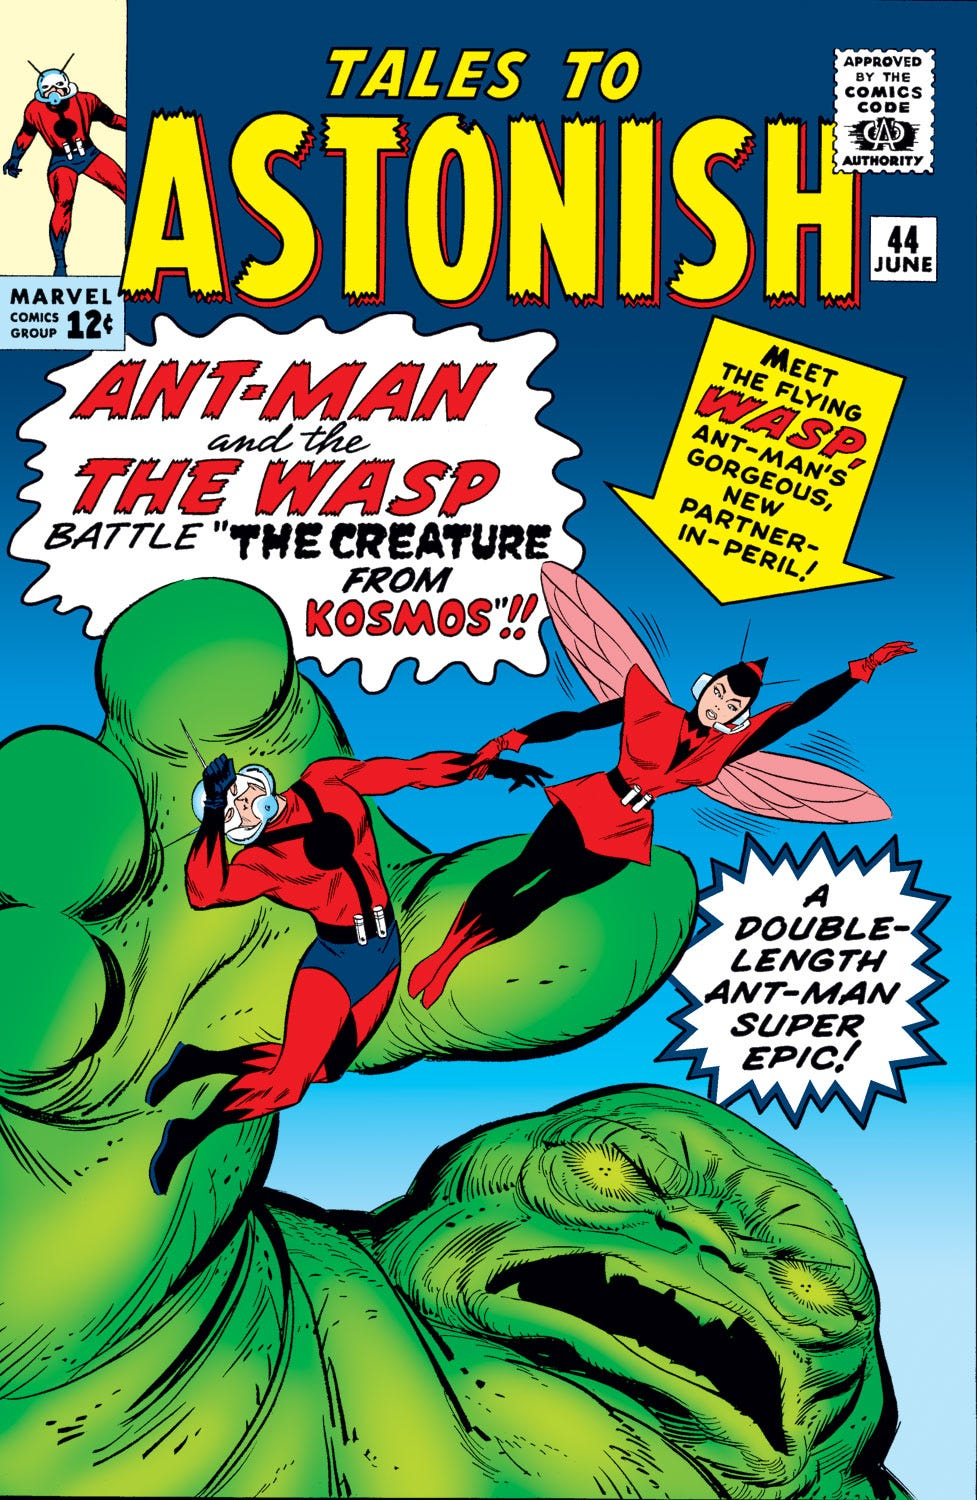 Tales to Astonish (1959) #44   Comic Issues   Marvel